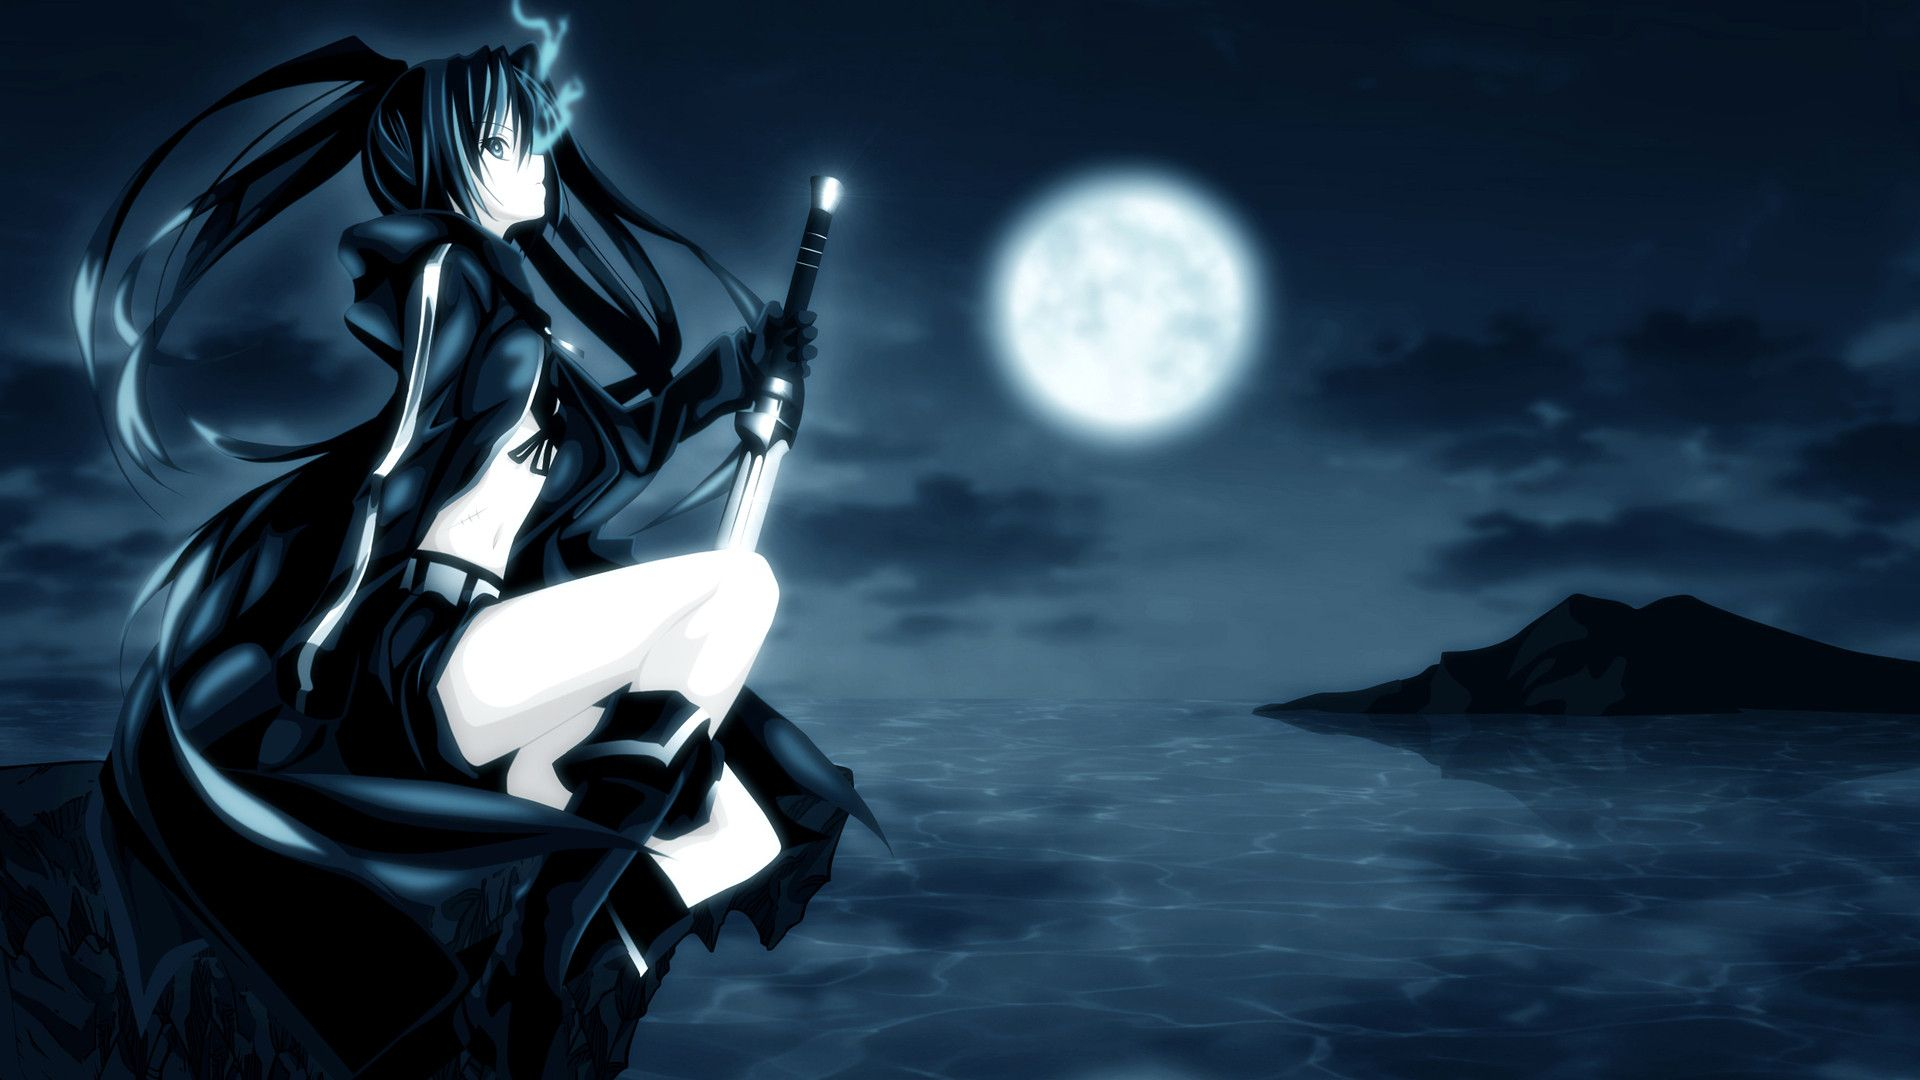 Cool Anime Wallpapers HD 1920x1080 - HD Wallpapers Backgrounds of